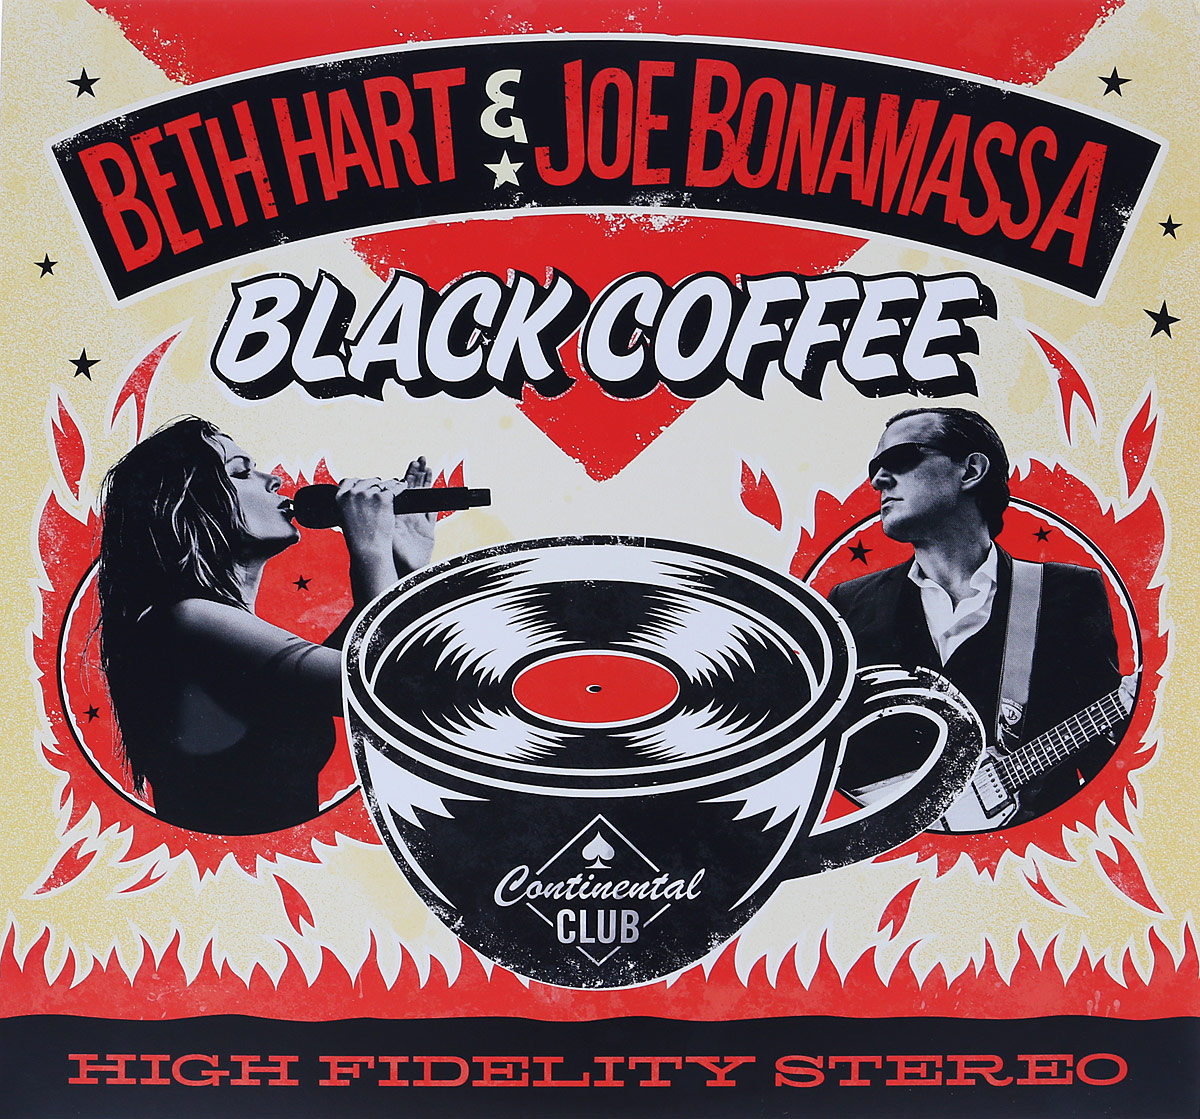 Бет Хат,Джо Бонамасса Beth Hart & Joe Bonamassa. Black Coffee (2 LP) beth hart beth hart leave the light on 2 lp colour